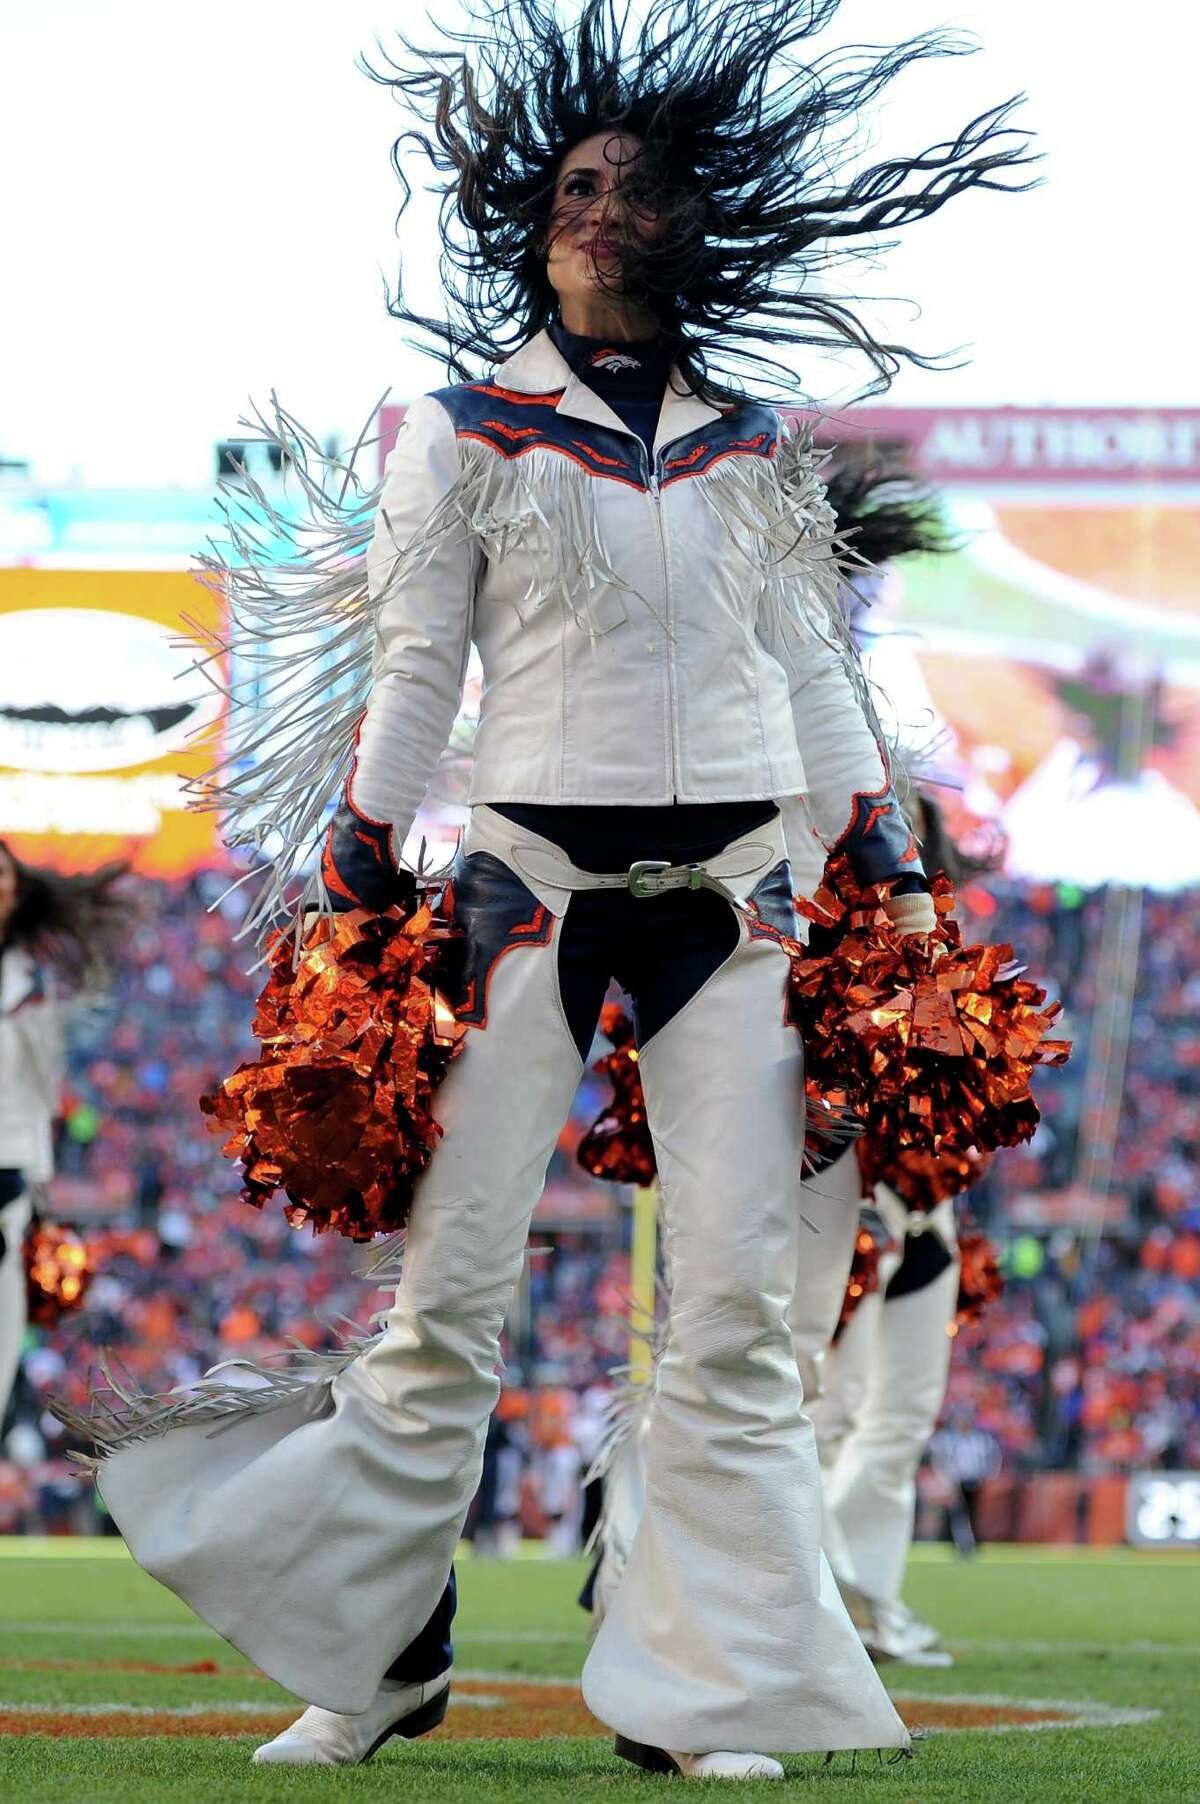 DENVER, CO - JANUARY 17: Denver Broncos cheerleaders perform in the first half during the AFC Divisional Playoff Game at Sports Authority Field at Mile High on January 17, 2016 in Denver, Colorado.